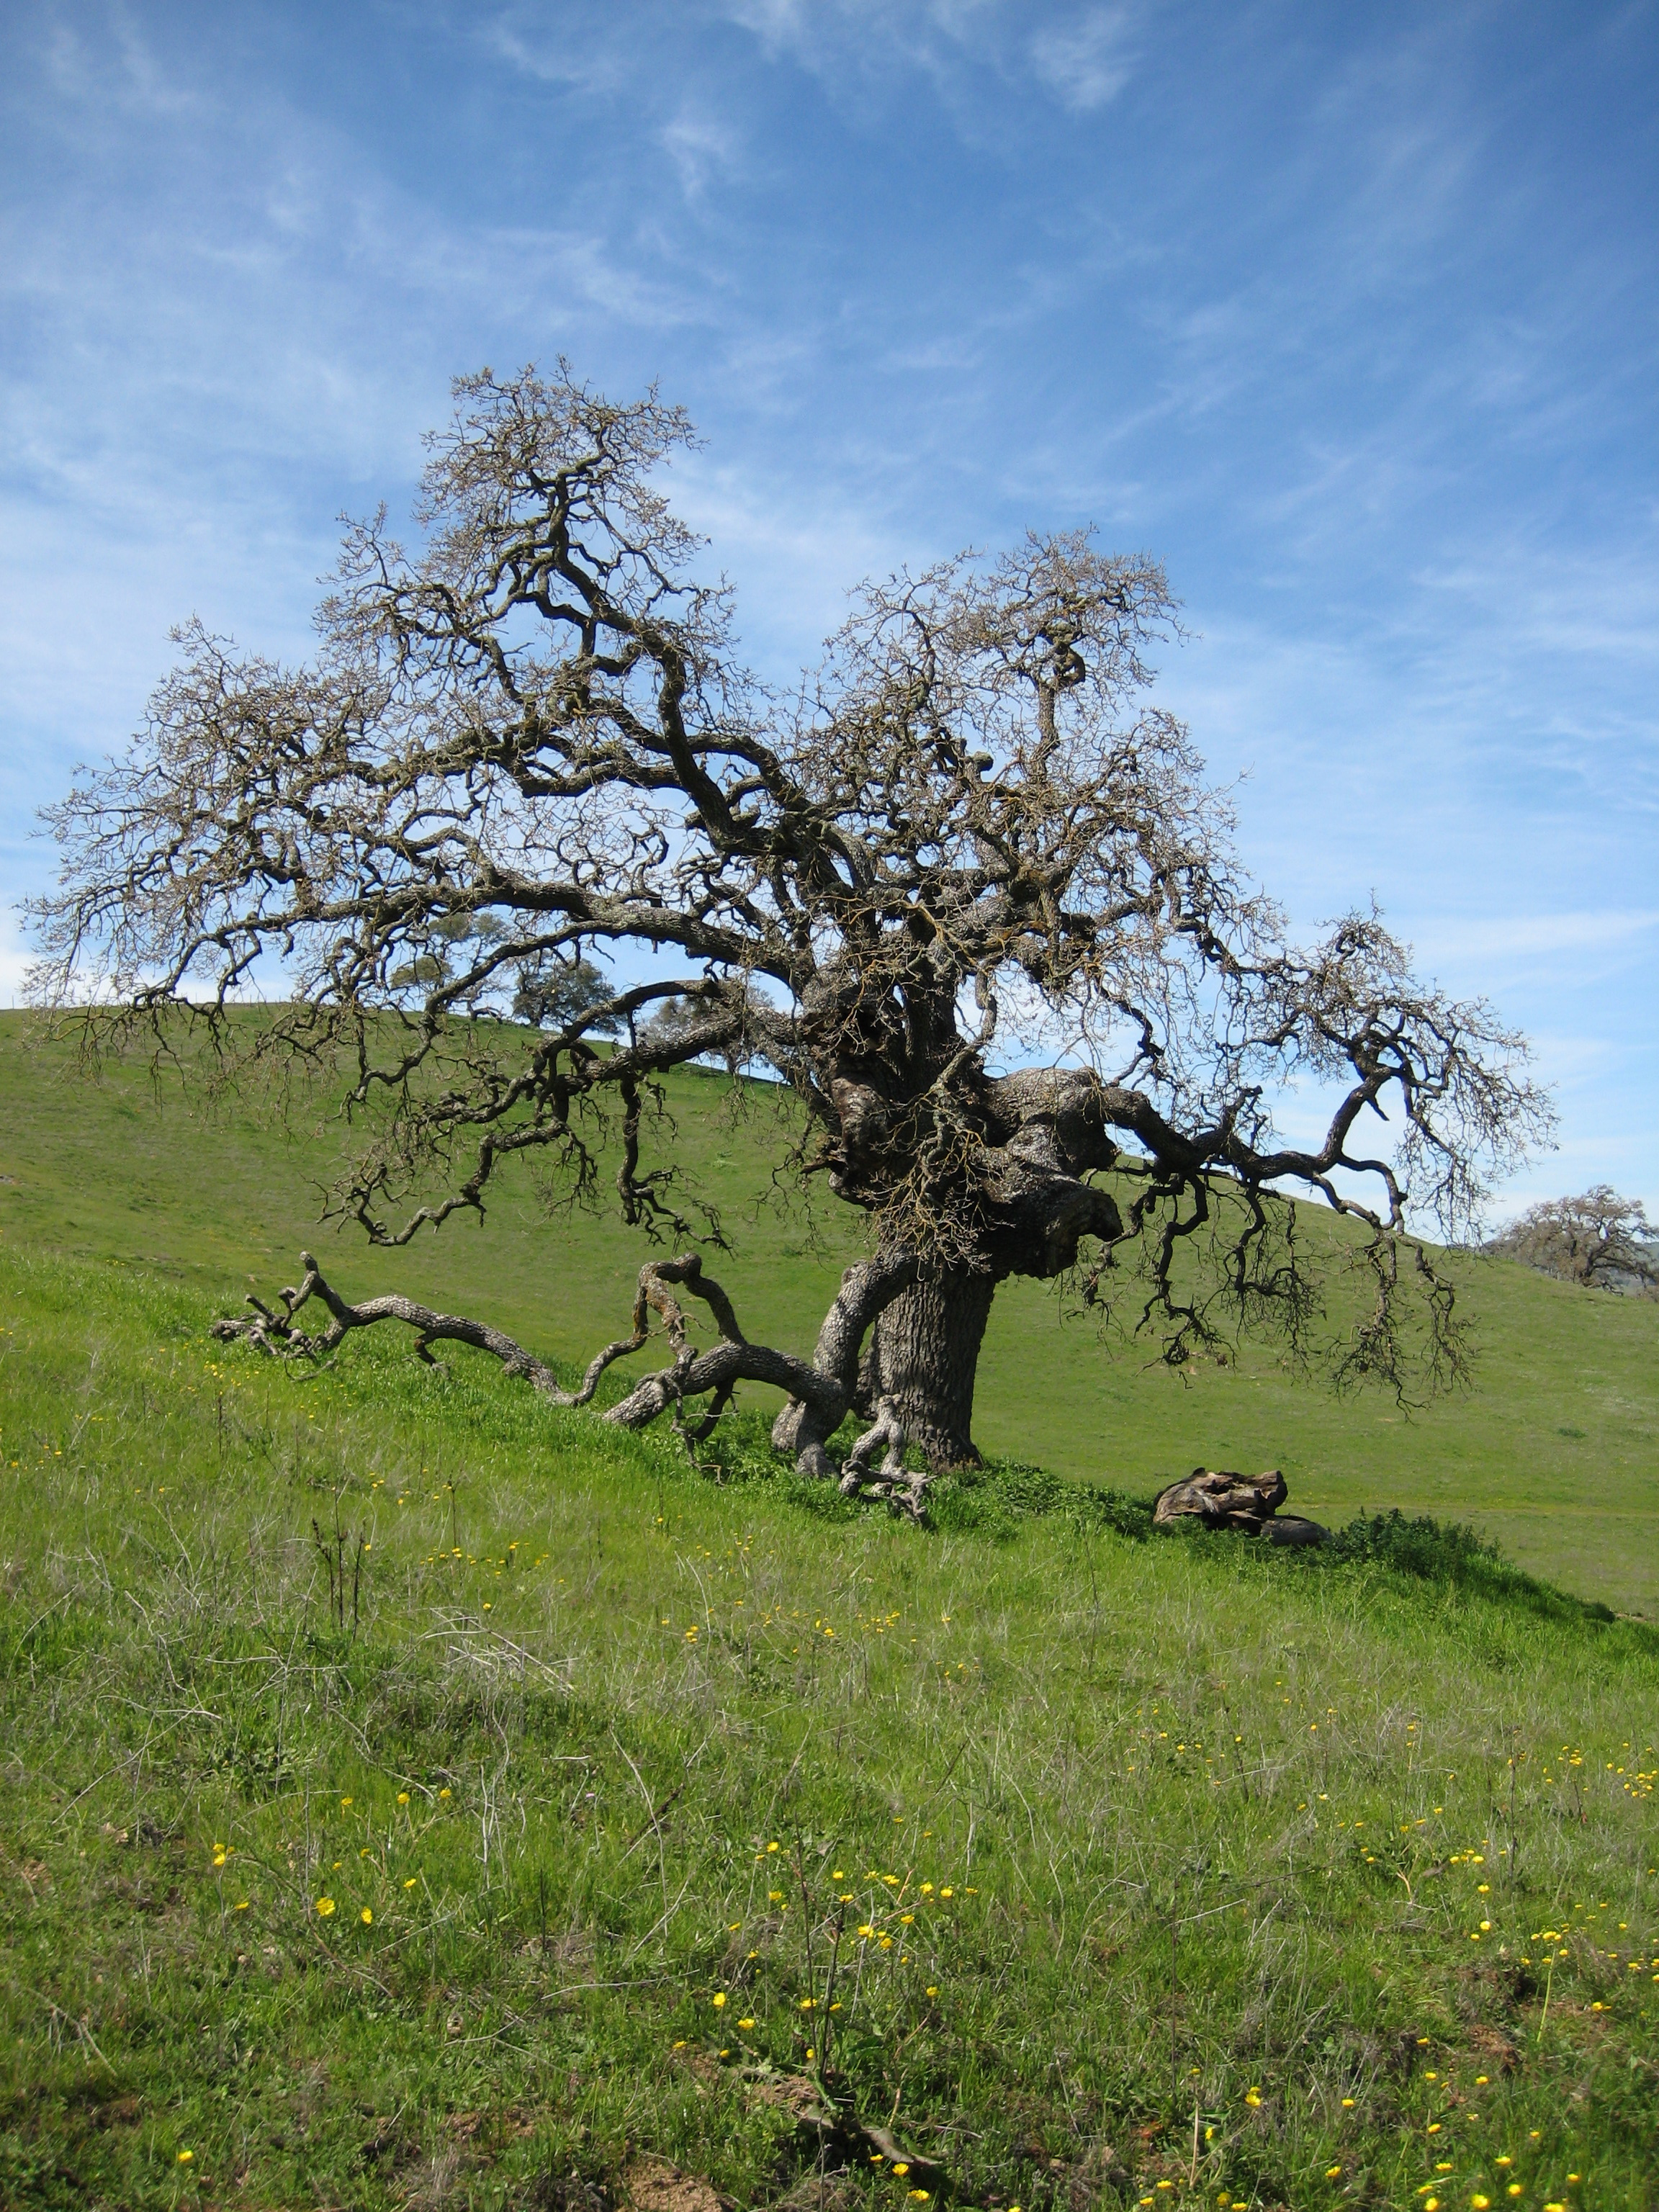 A gnarled tree stands alone on a hillside in Pacheco State Park, California.